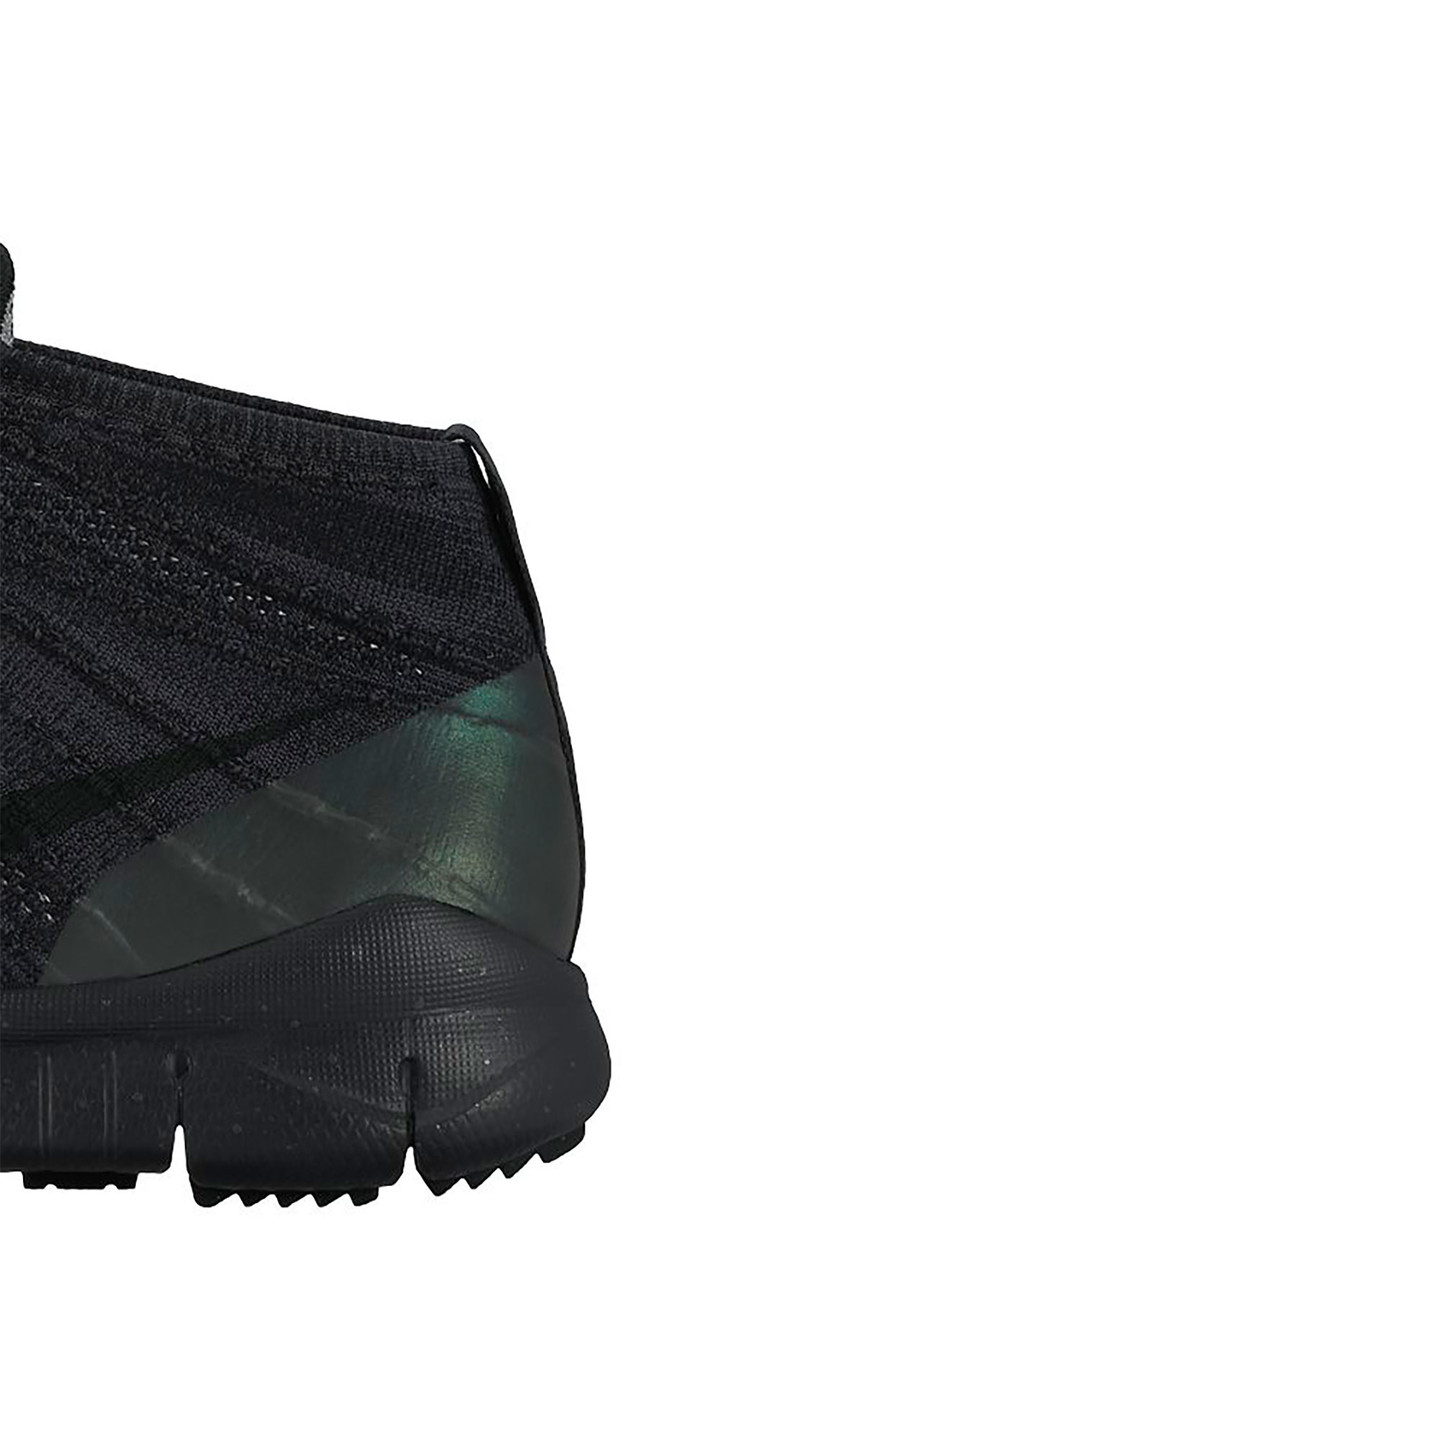 Nike Flyknit Trainer Chukka Sneakerboot Black / Anthracite 805092-001-44